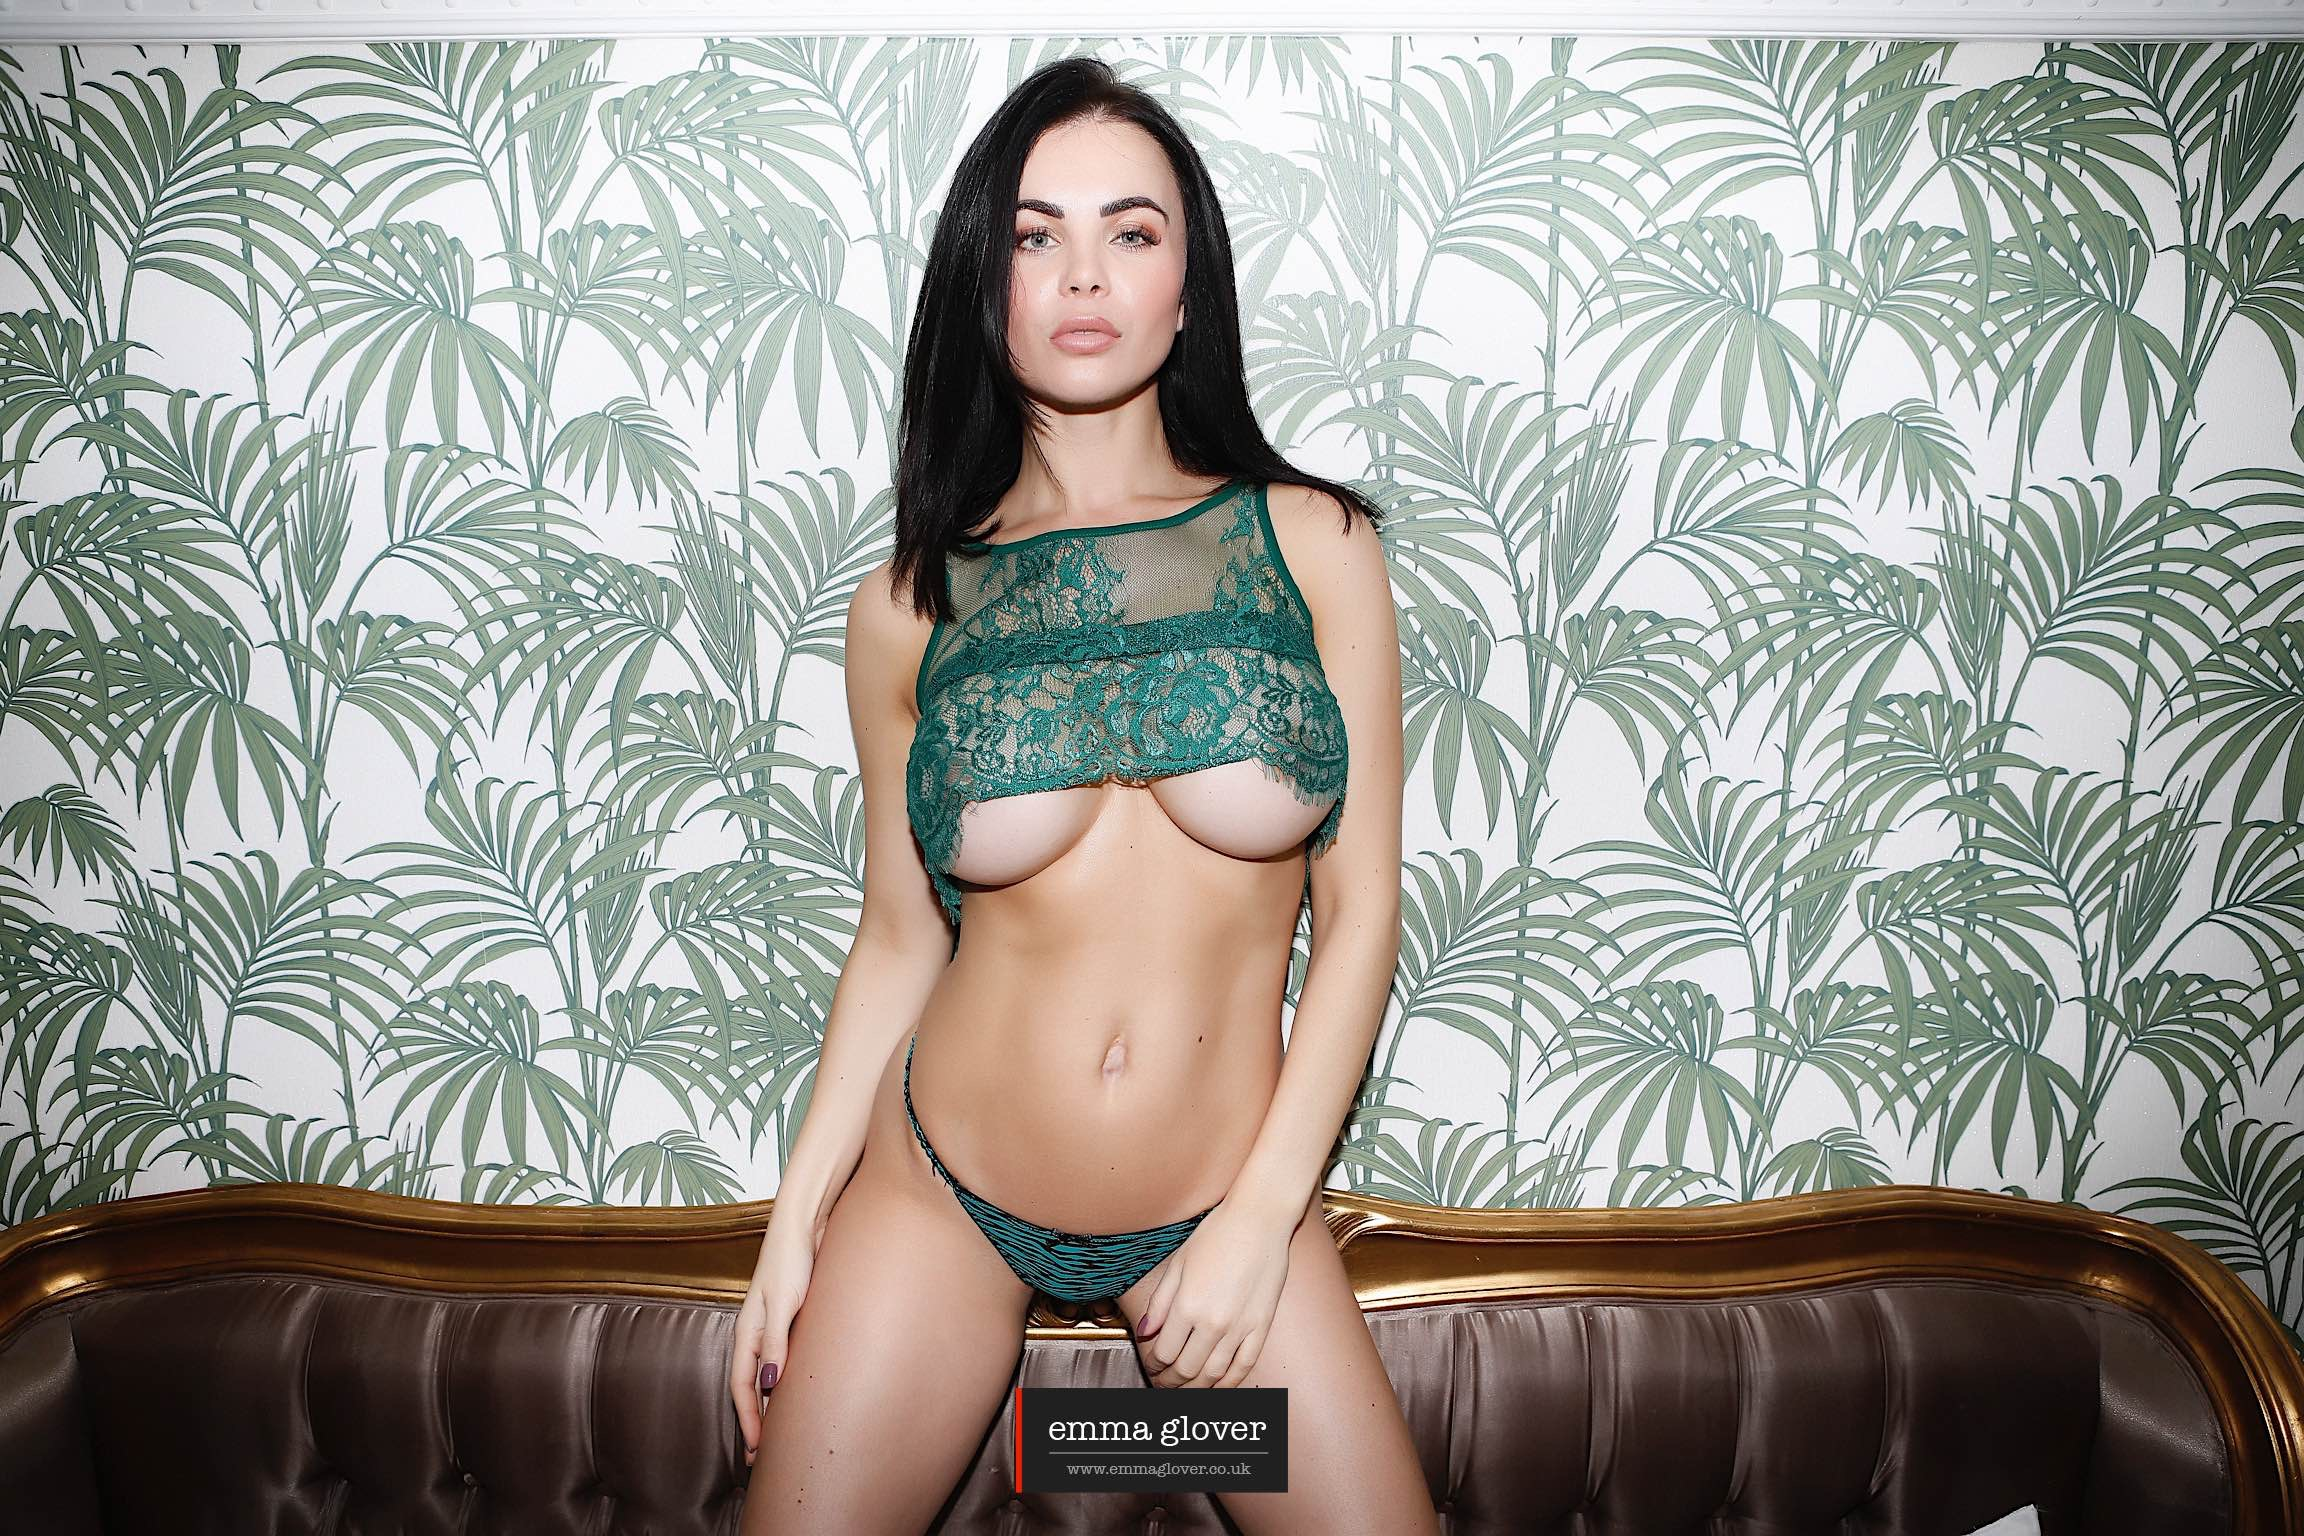 Like my new wallpaper? – 100 Uncensored Pictures